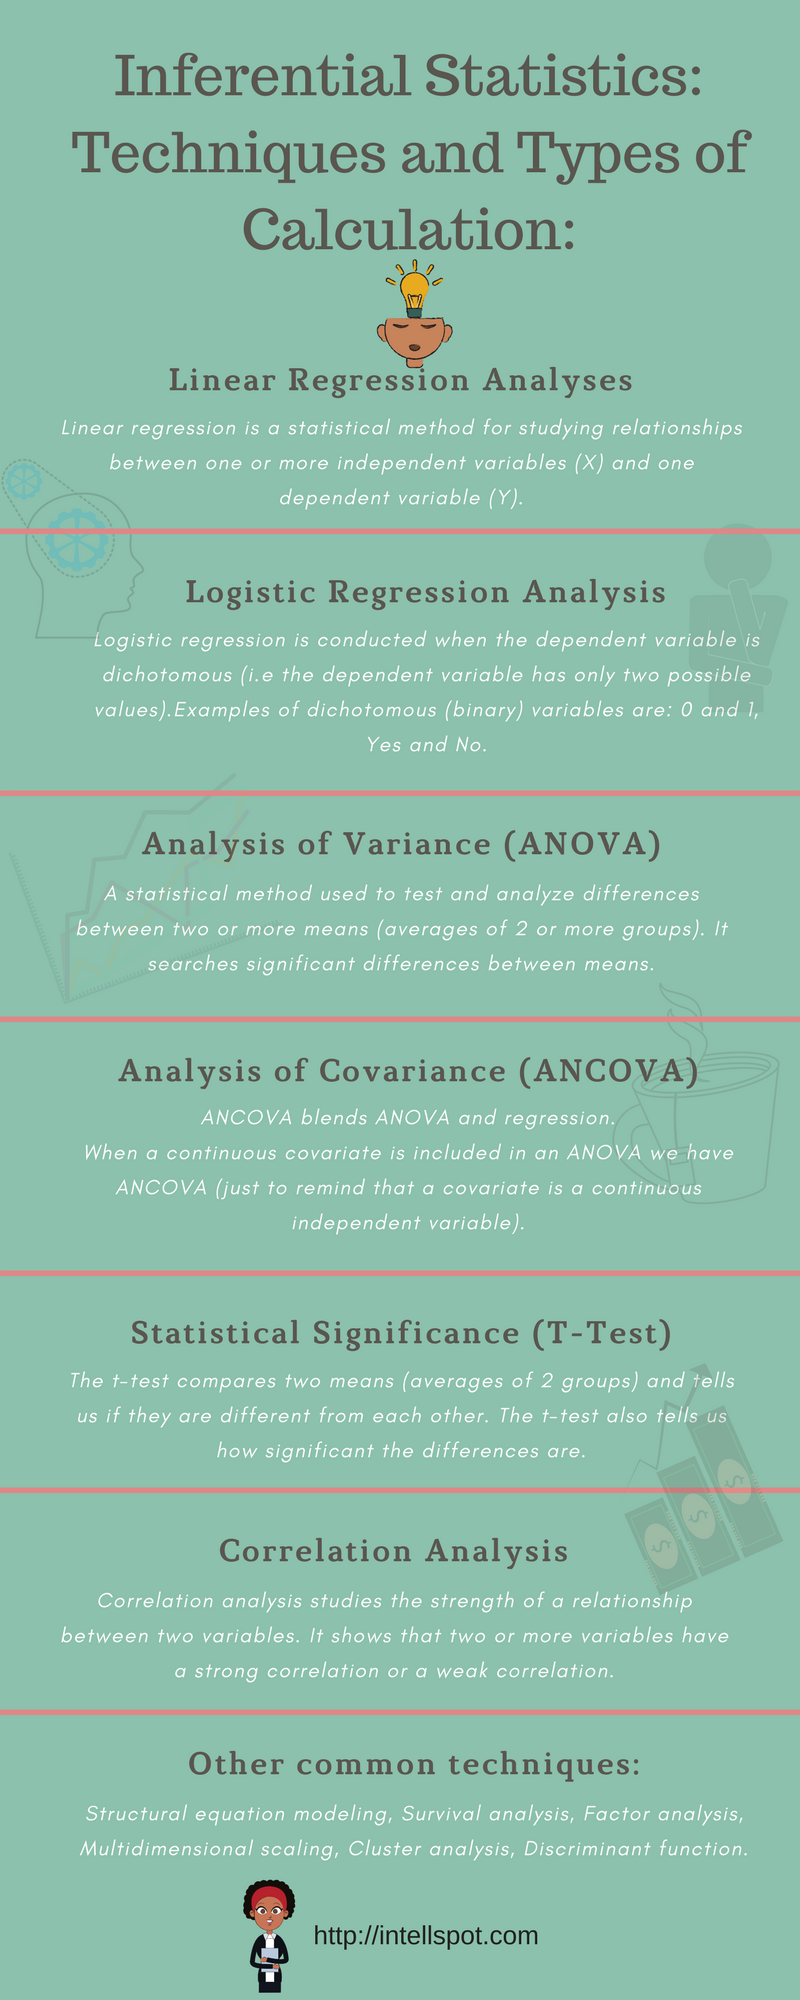 Inferential Statistics types of calculation - infographic